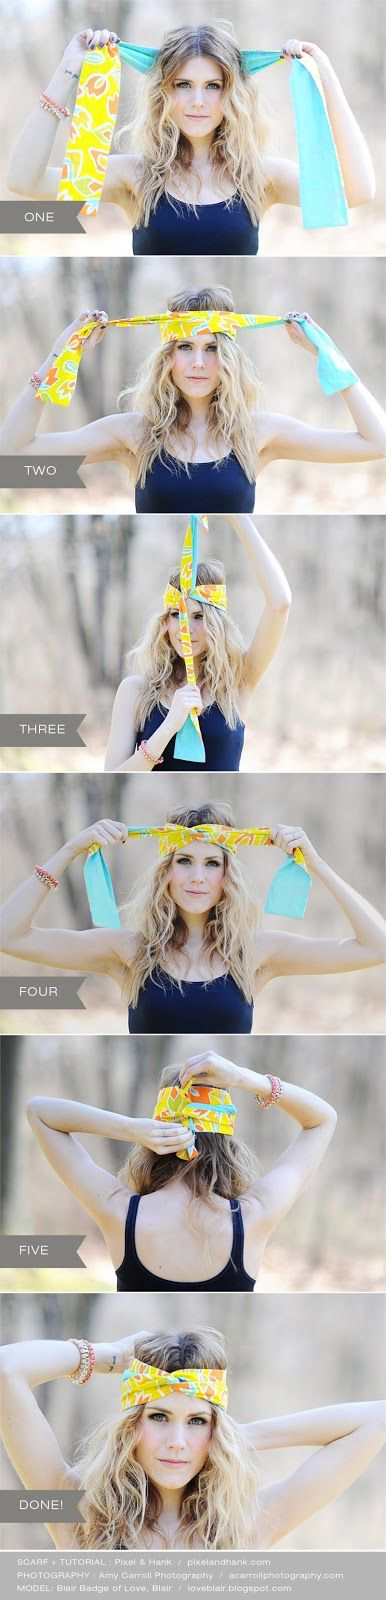 How to tie a turban headband by Pixel & Hank. Photography by @Amy Lyons Carroll - Model: @Blair R Badge